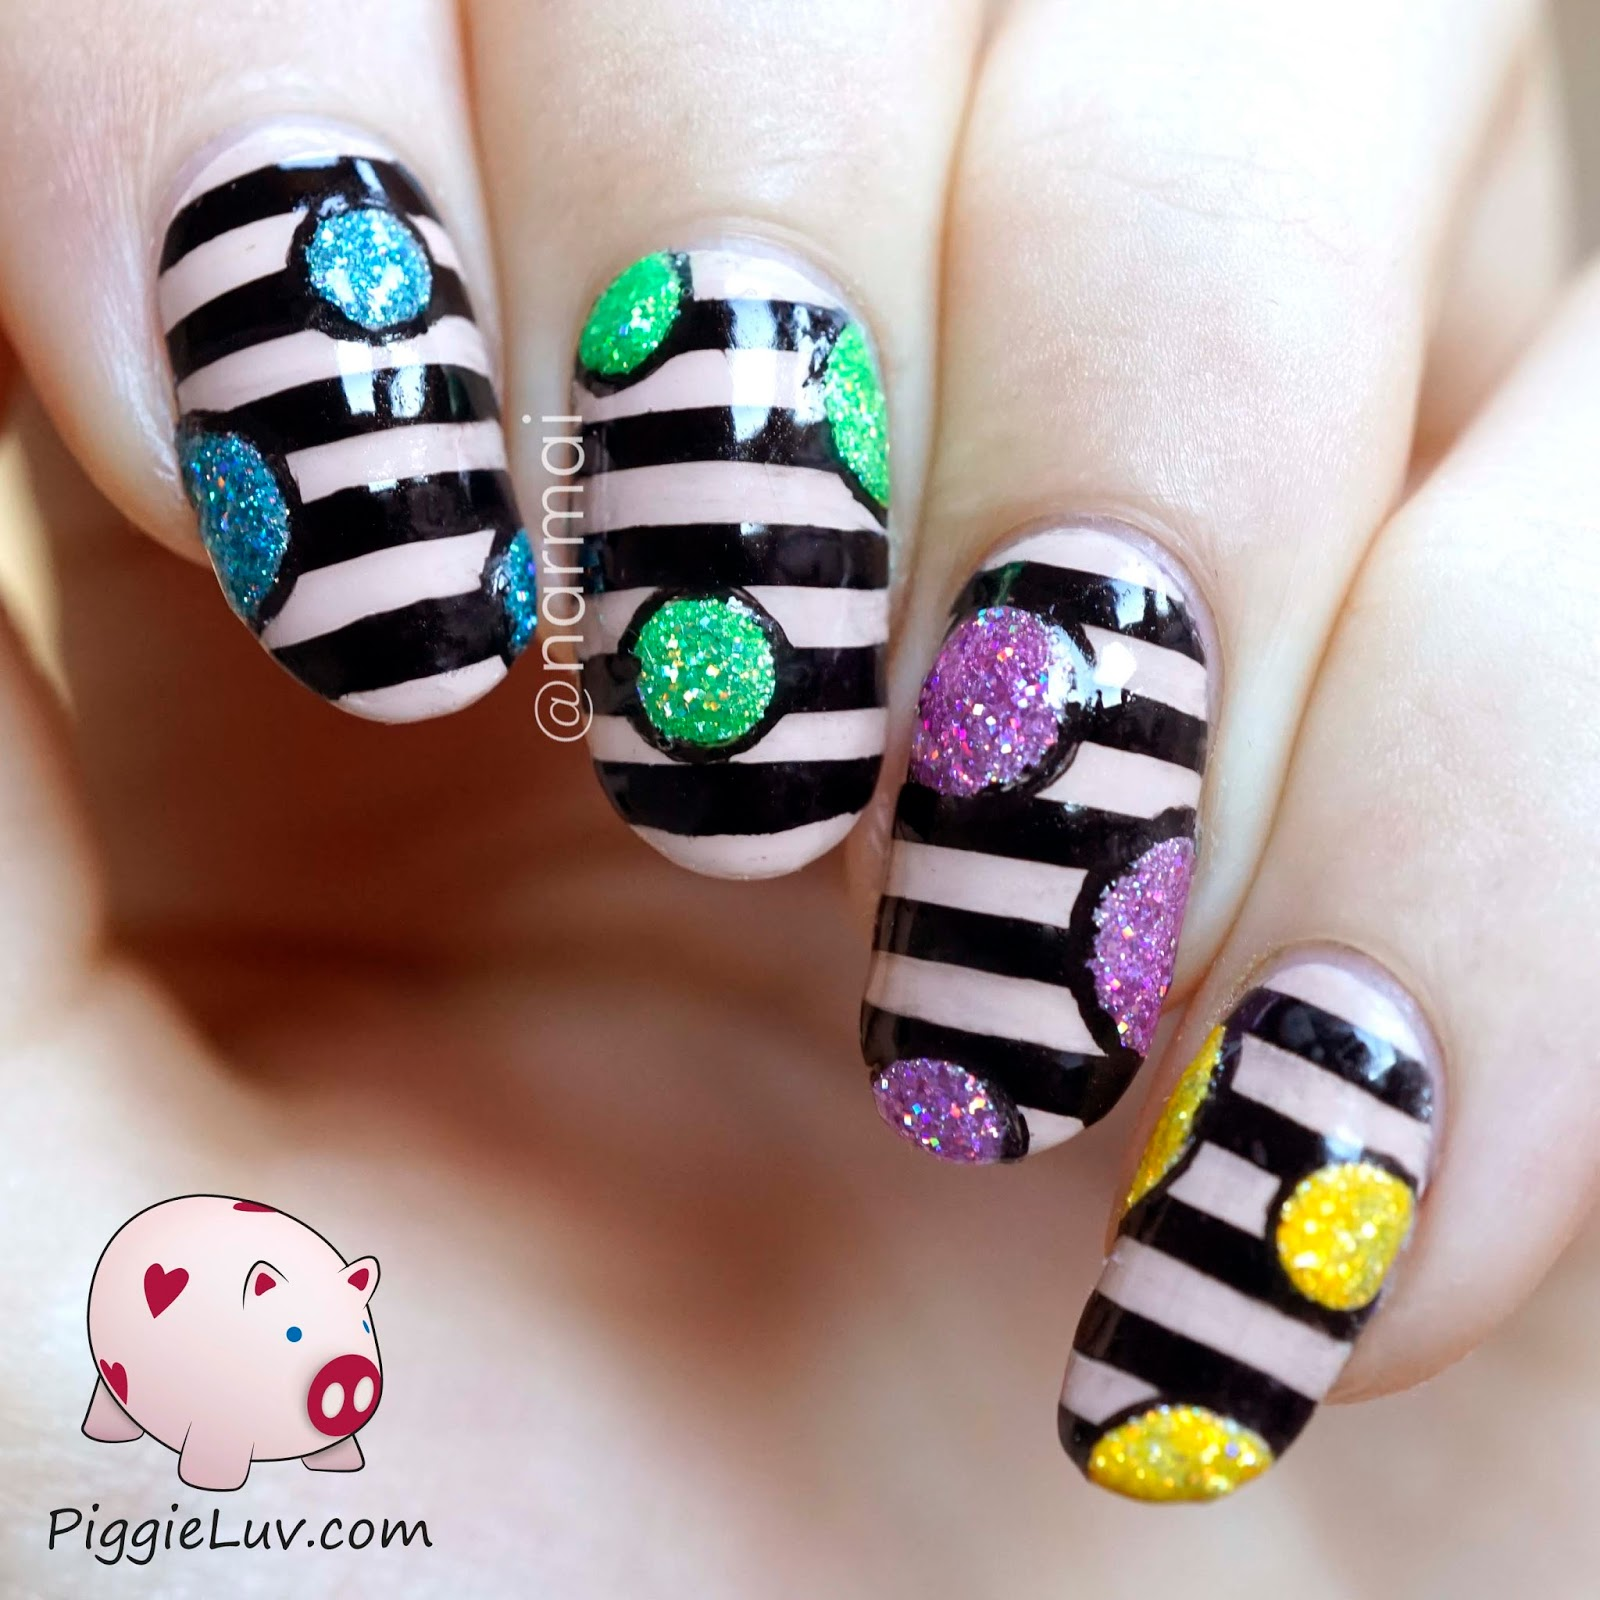 The Latest Nail Art Designs